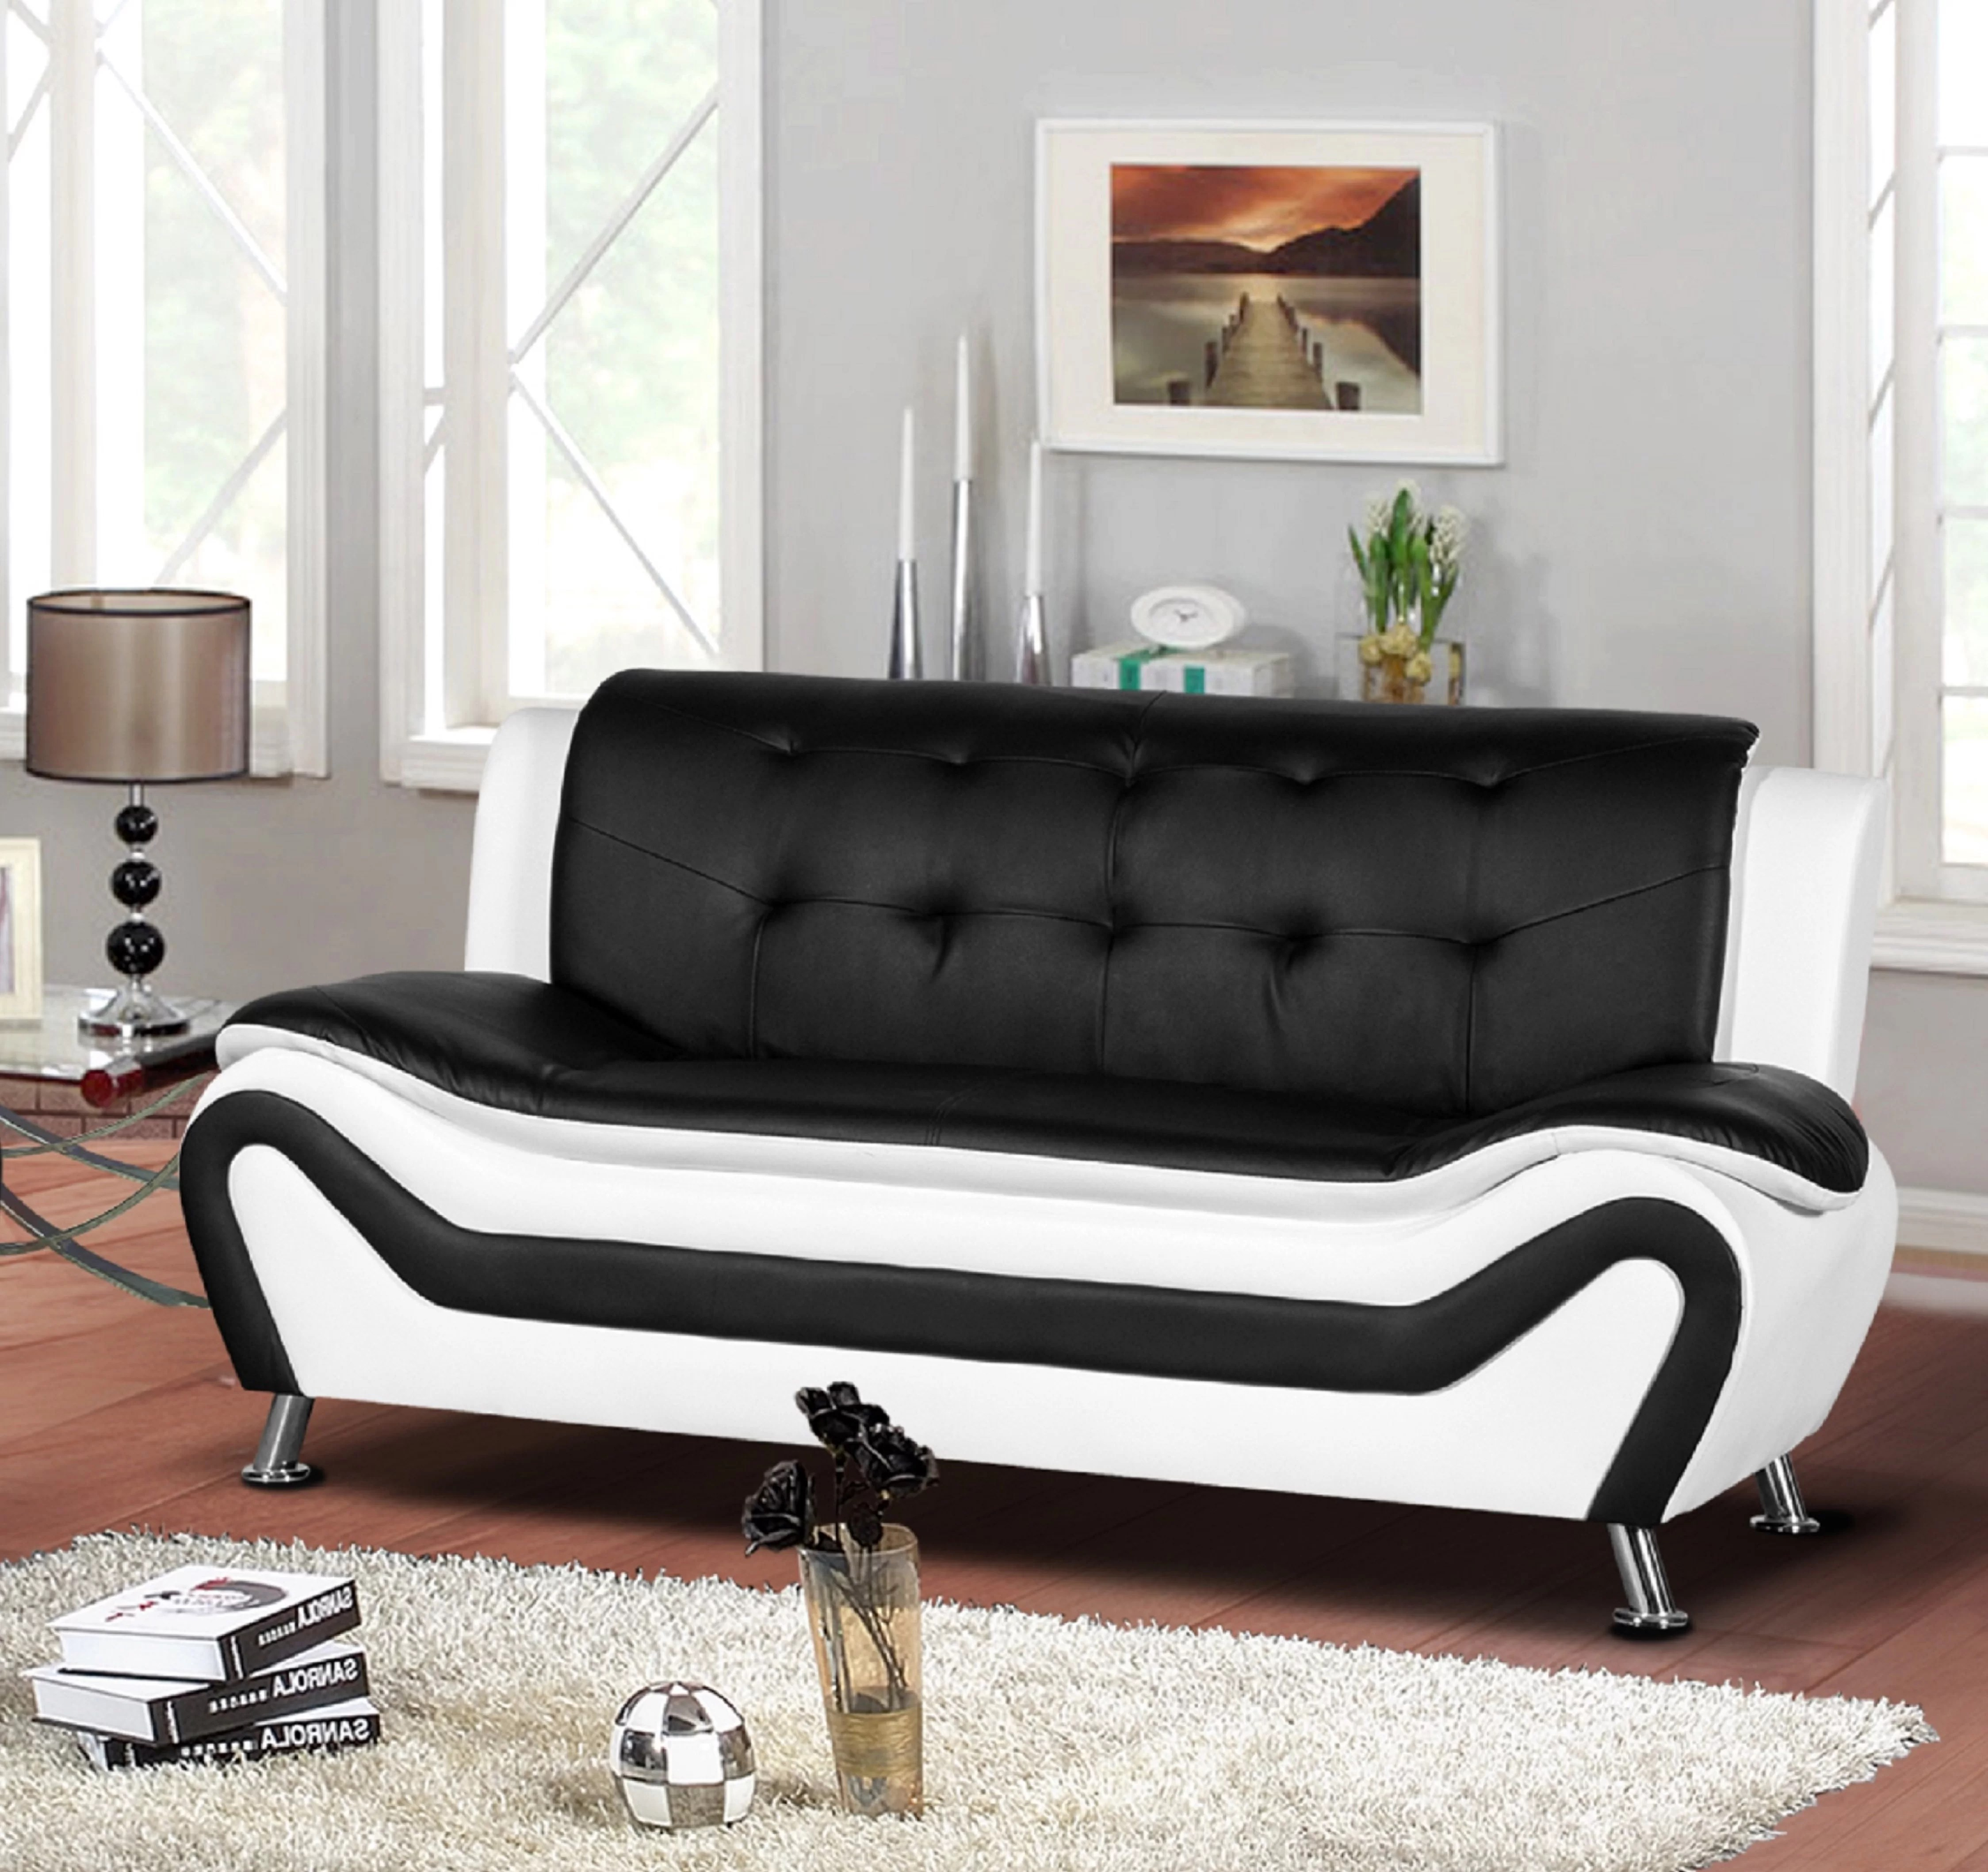 Unusual Living Room Furniture Lizbeth Sofa